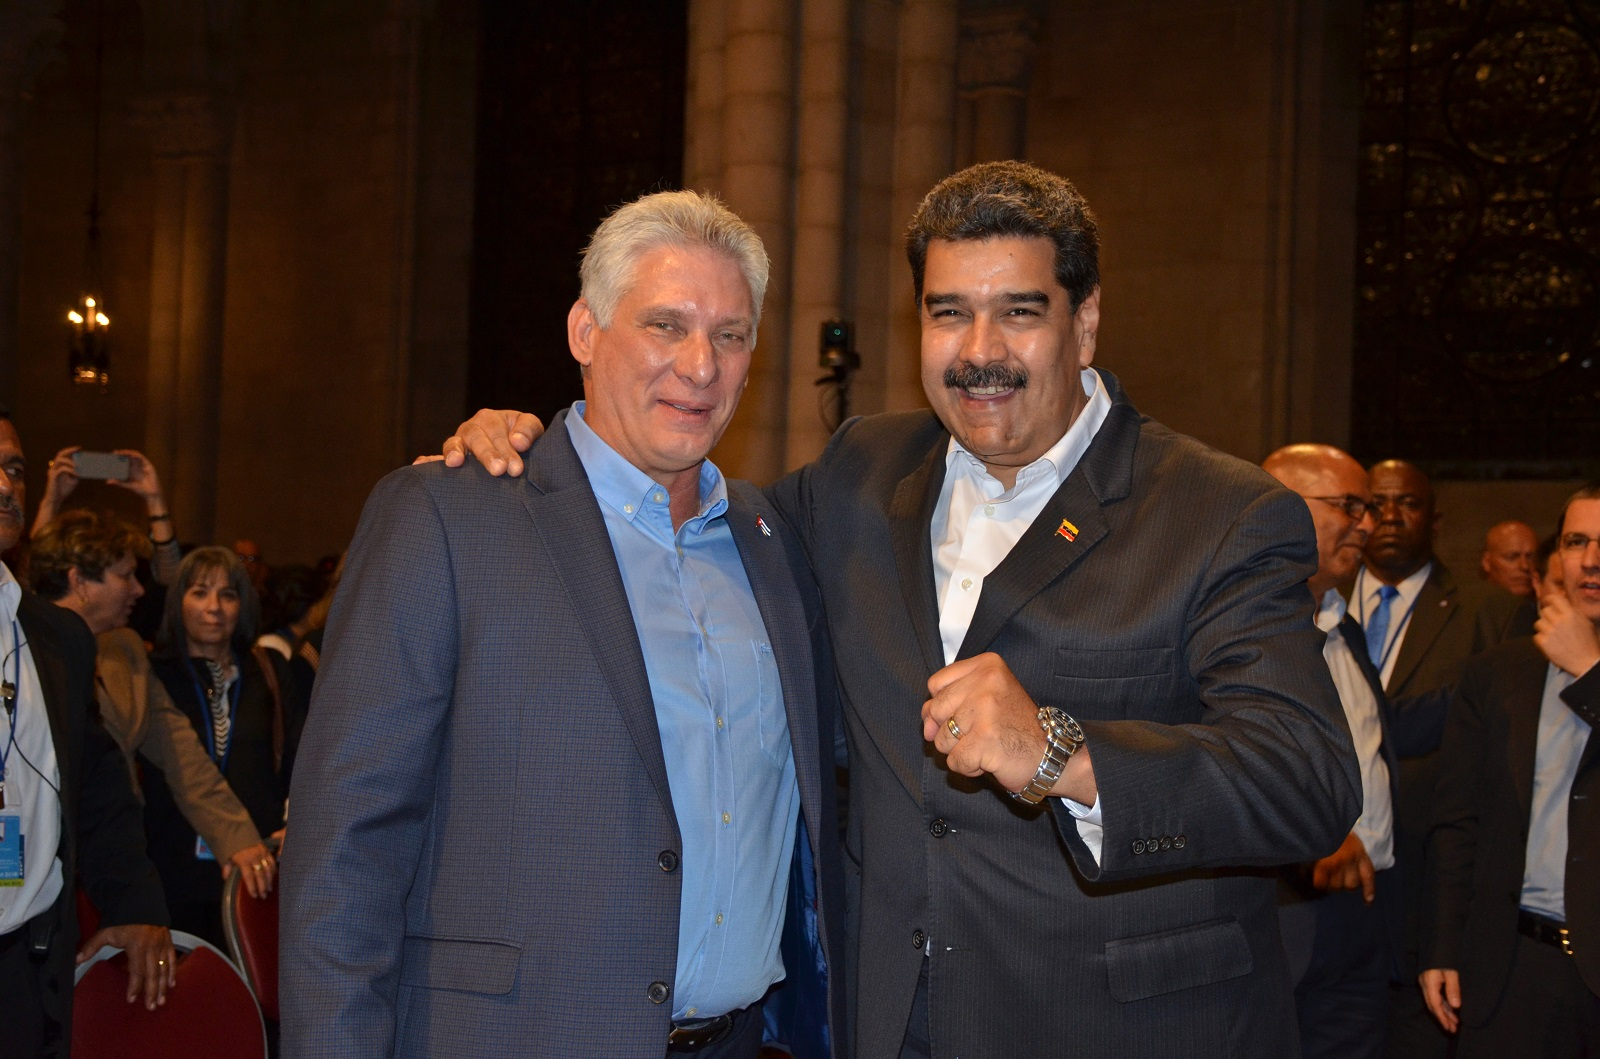 Miguel Díaz-Canel Bermúdez , President of the Republic of Cuba, and Nicolás Maduro Moros, President of the Bolivarian Republic of Venezuela, in Riverside Church in New York City. Liberation photo: Gloria LaRiva.